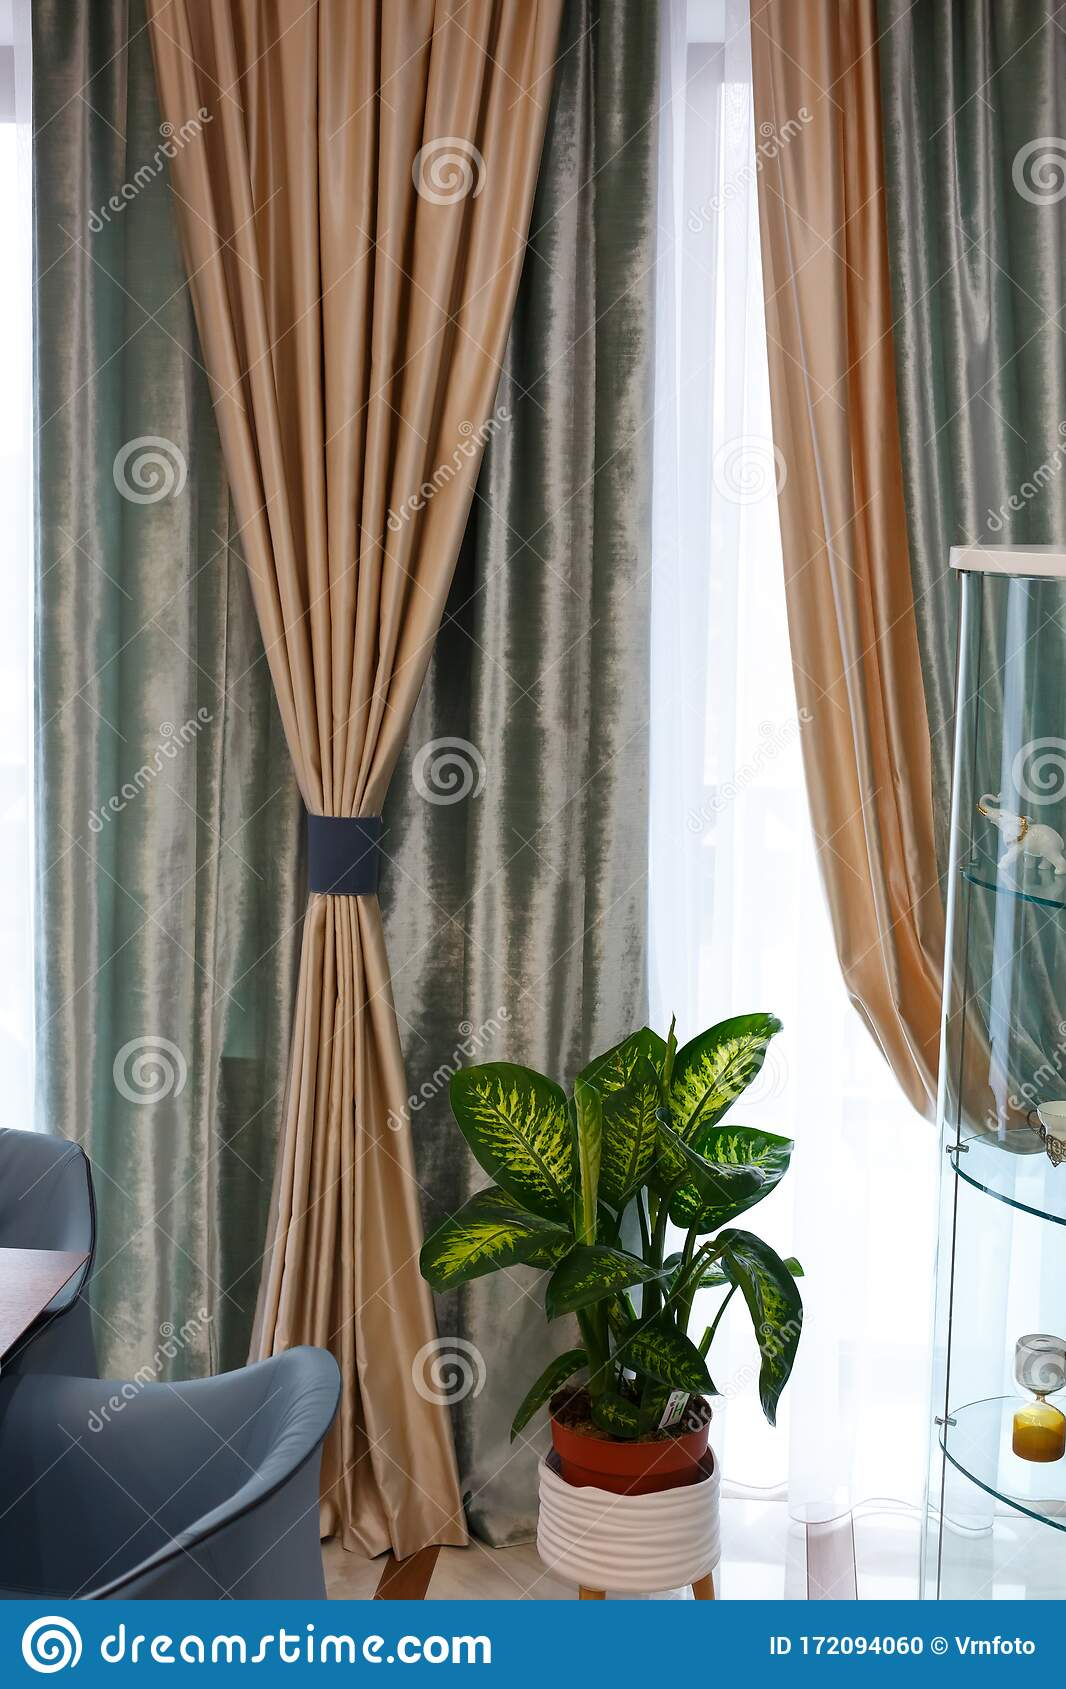 The Interior Of The Living Room Beautiful Curtains And Drapes On The Window Stock Photo Image Of Open Luxury 172094060